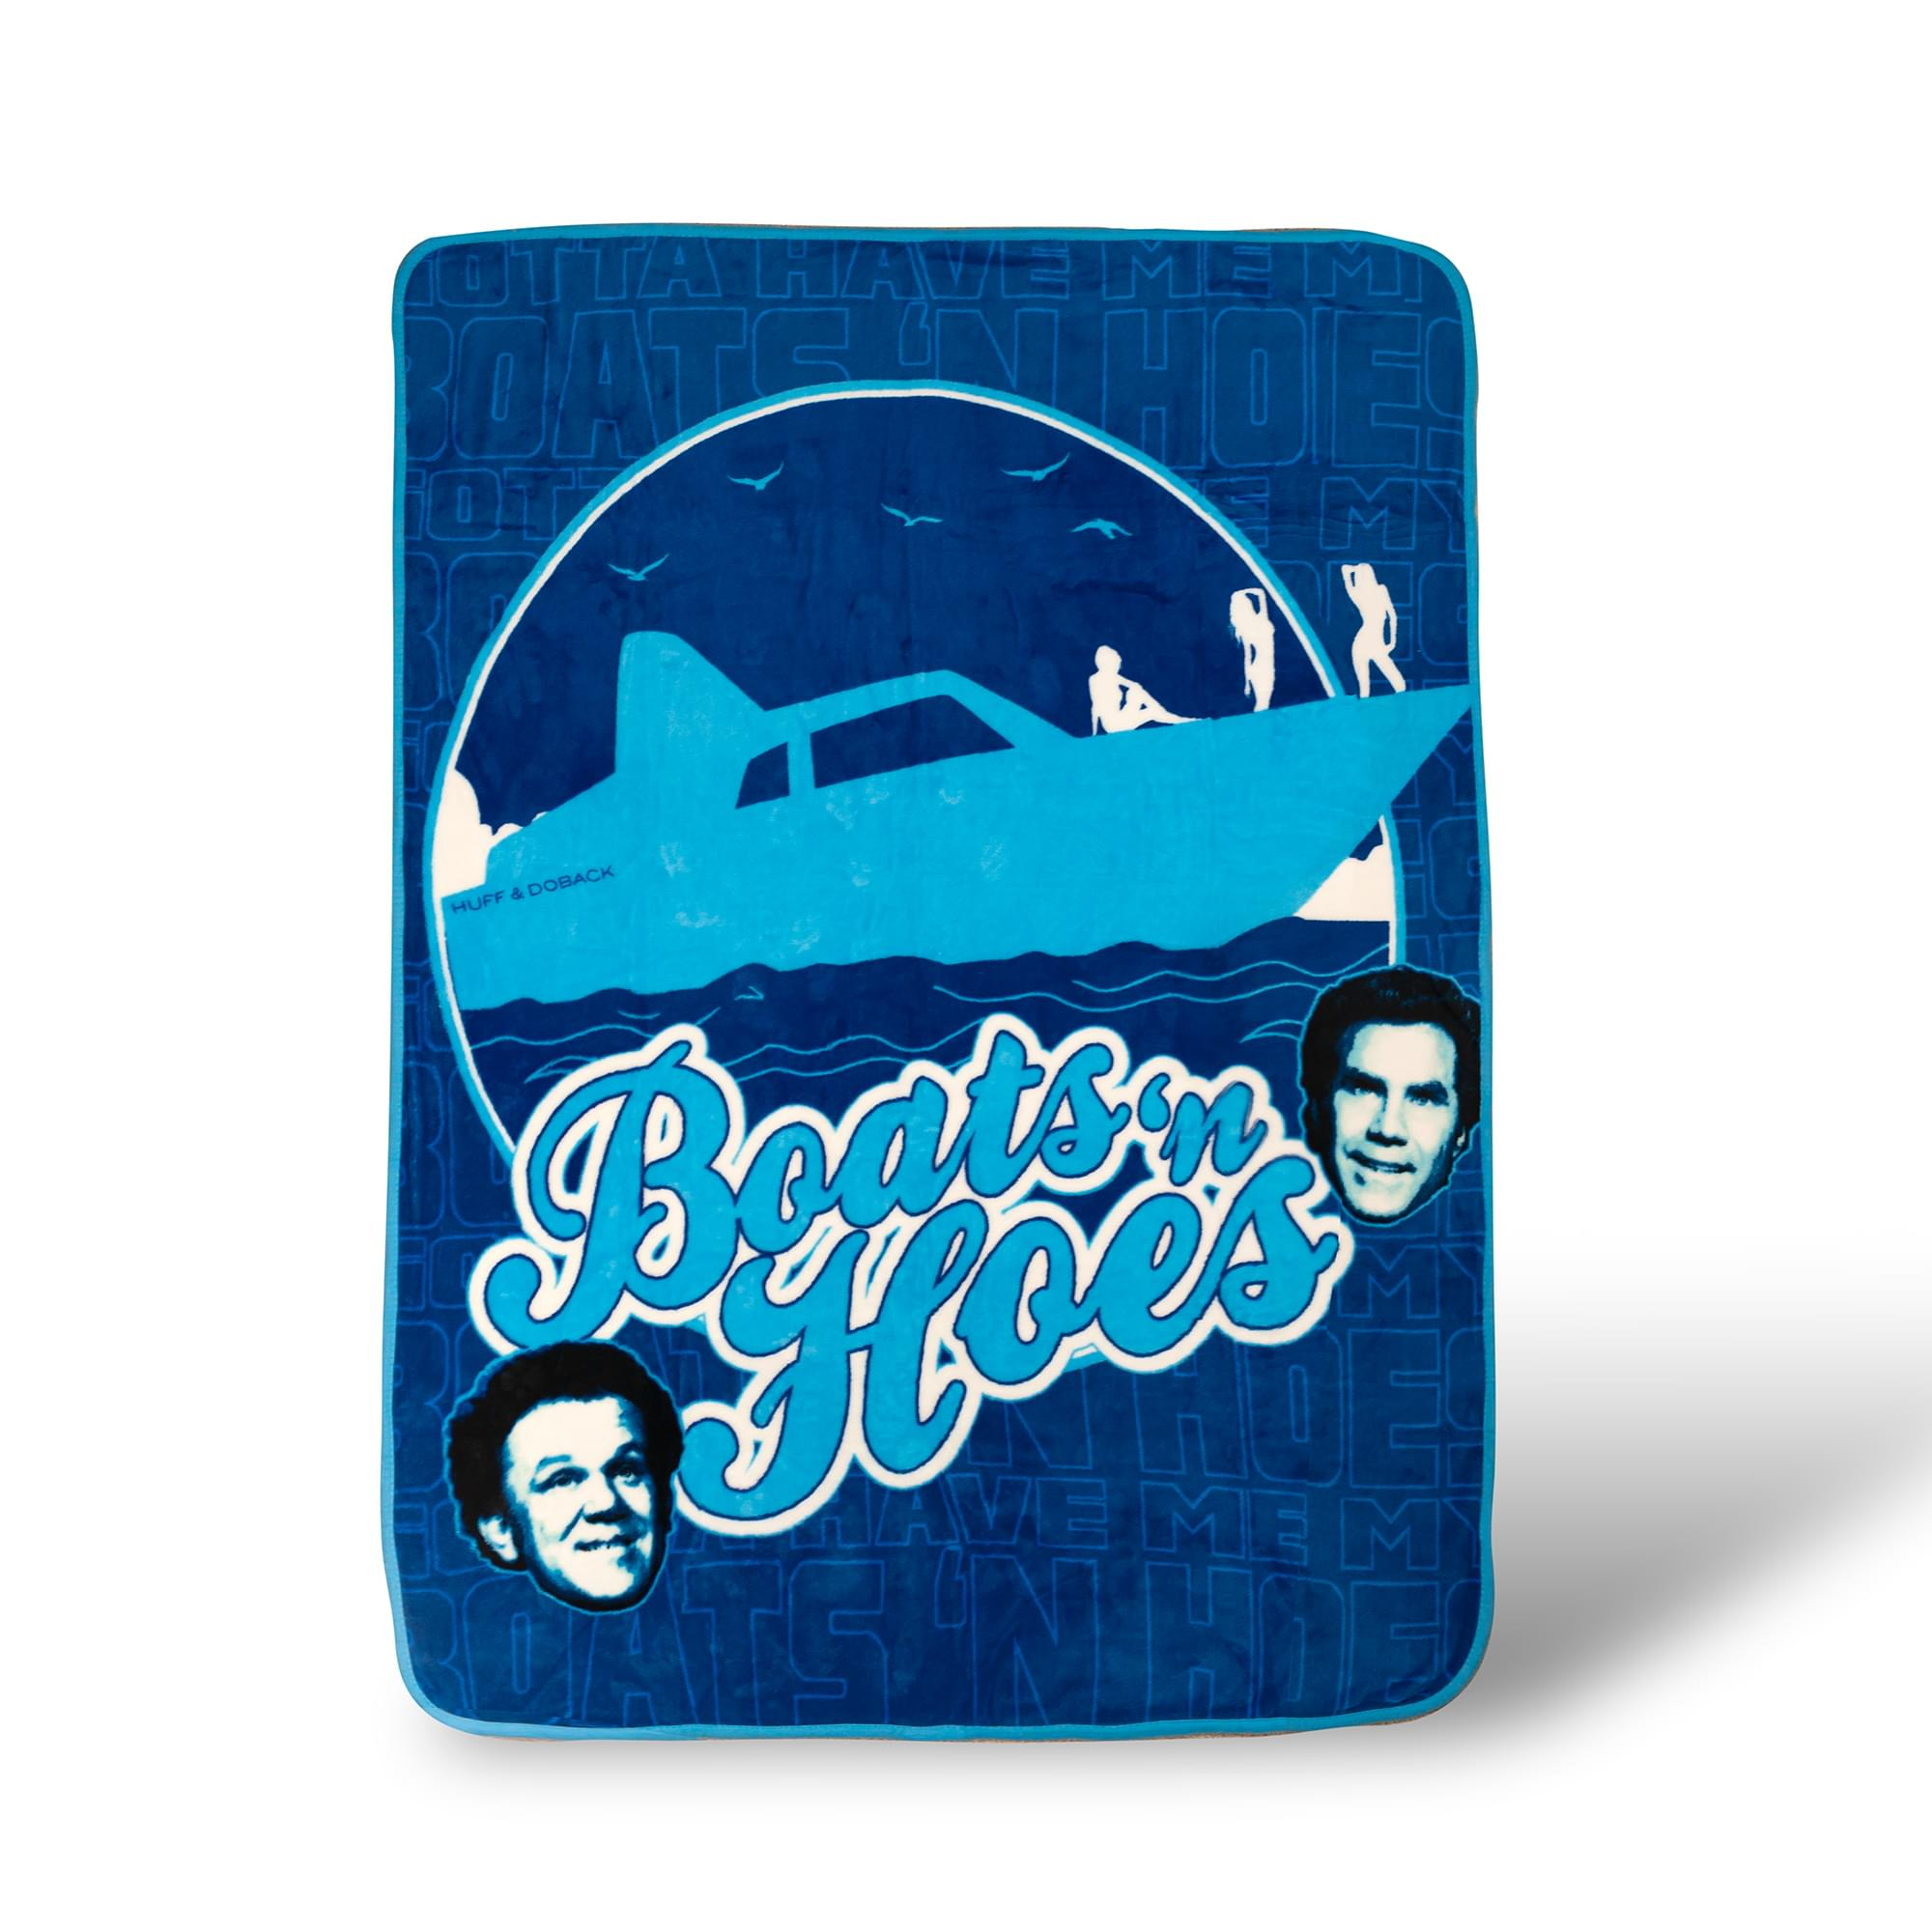 Step Brothers Boats 'N Hoes Throw Blanket | Soft Micro Plush | 45 x 60 Inches